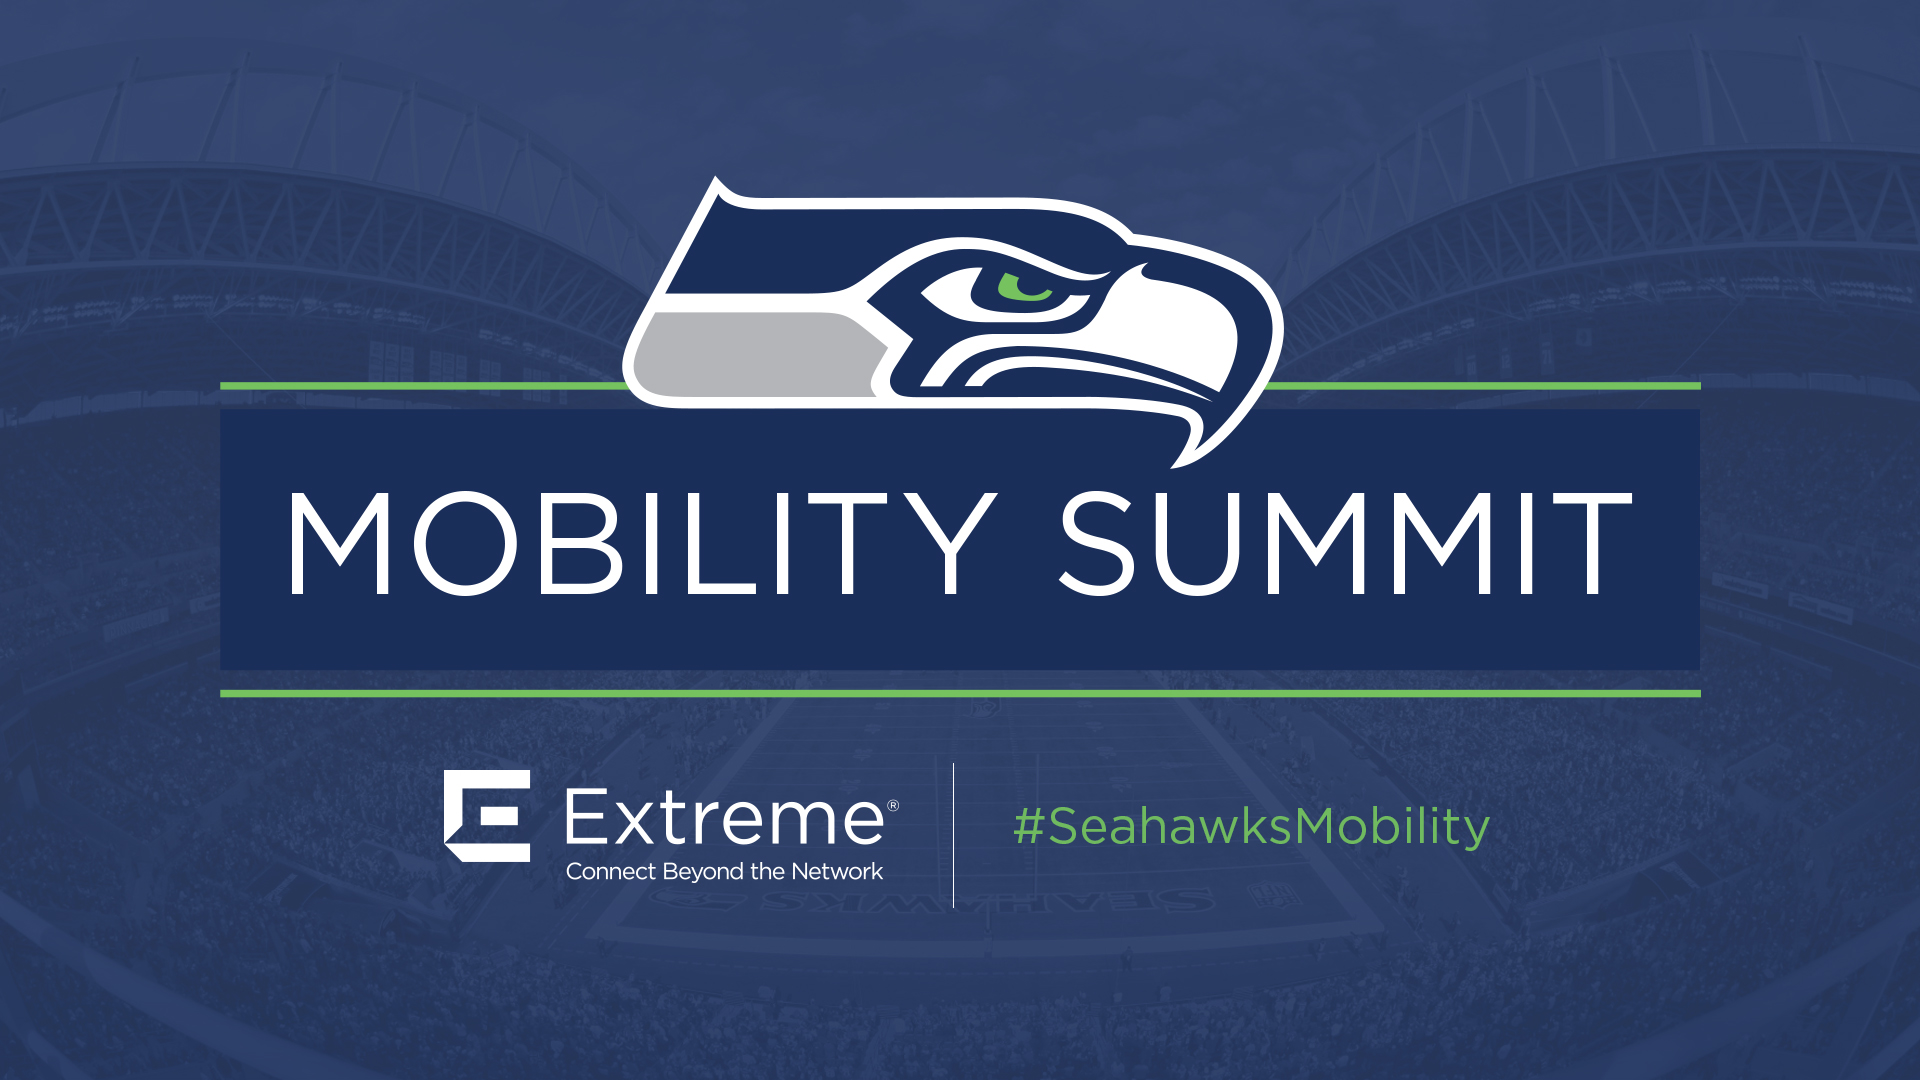 Seahawks-Mobility-Summit_Club-Monitor-Event-Logo